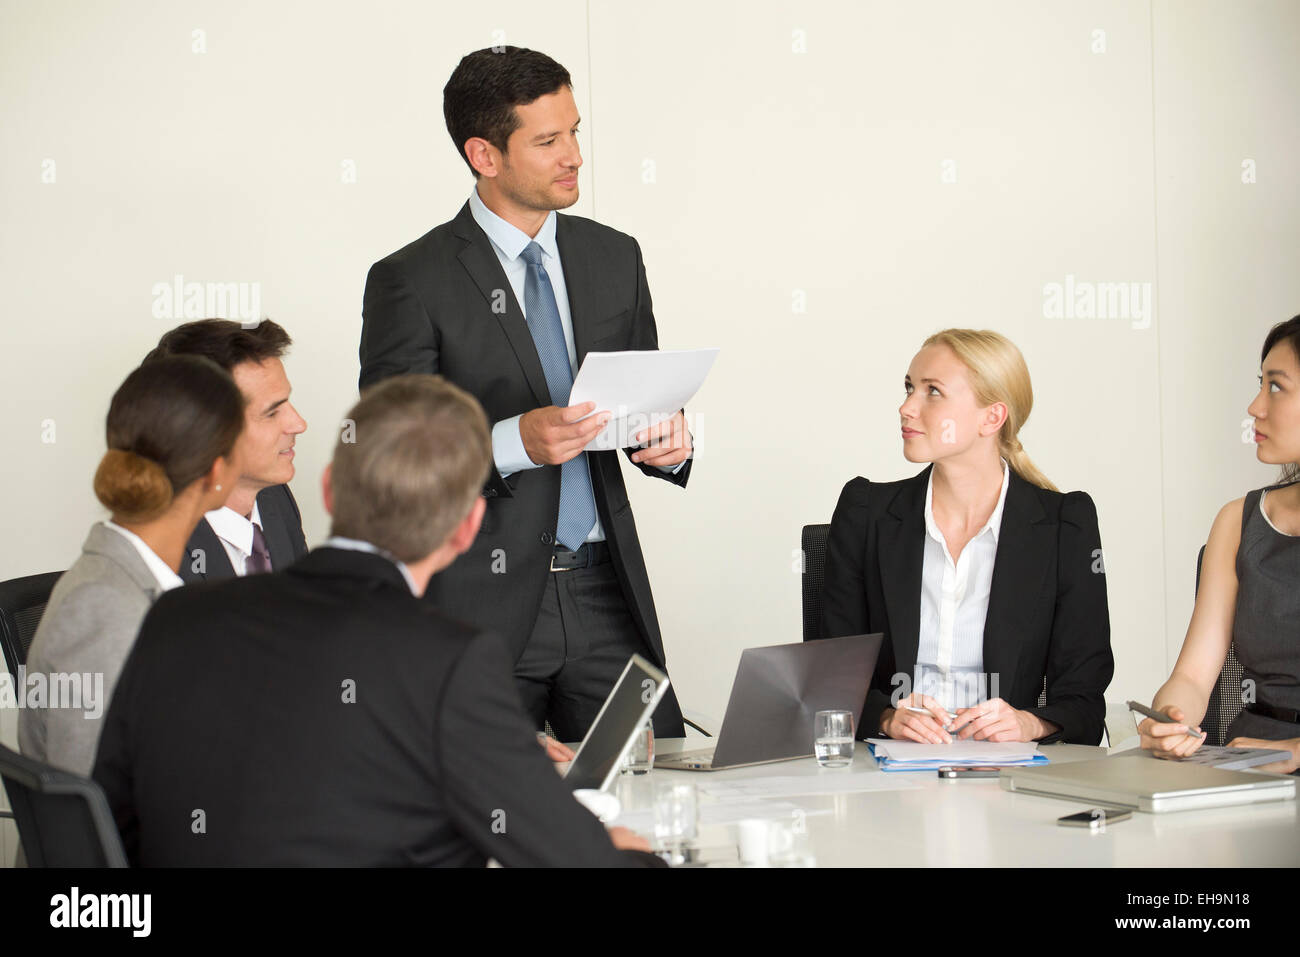 Executive giving presentation in meeting Stock Photo